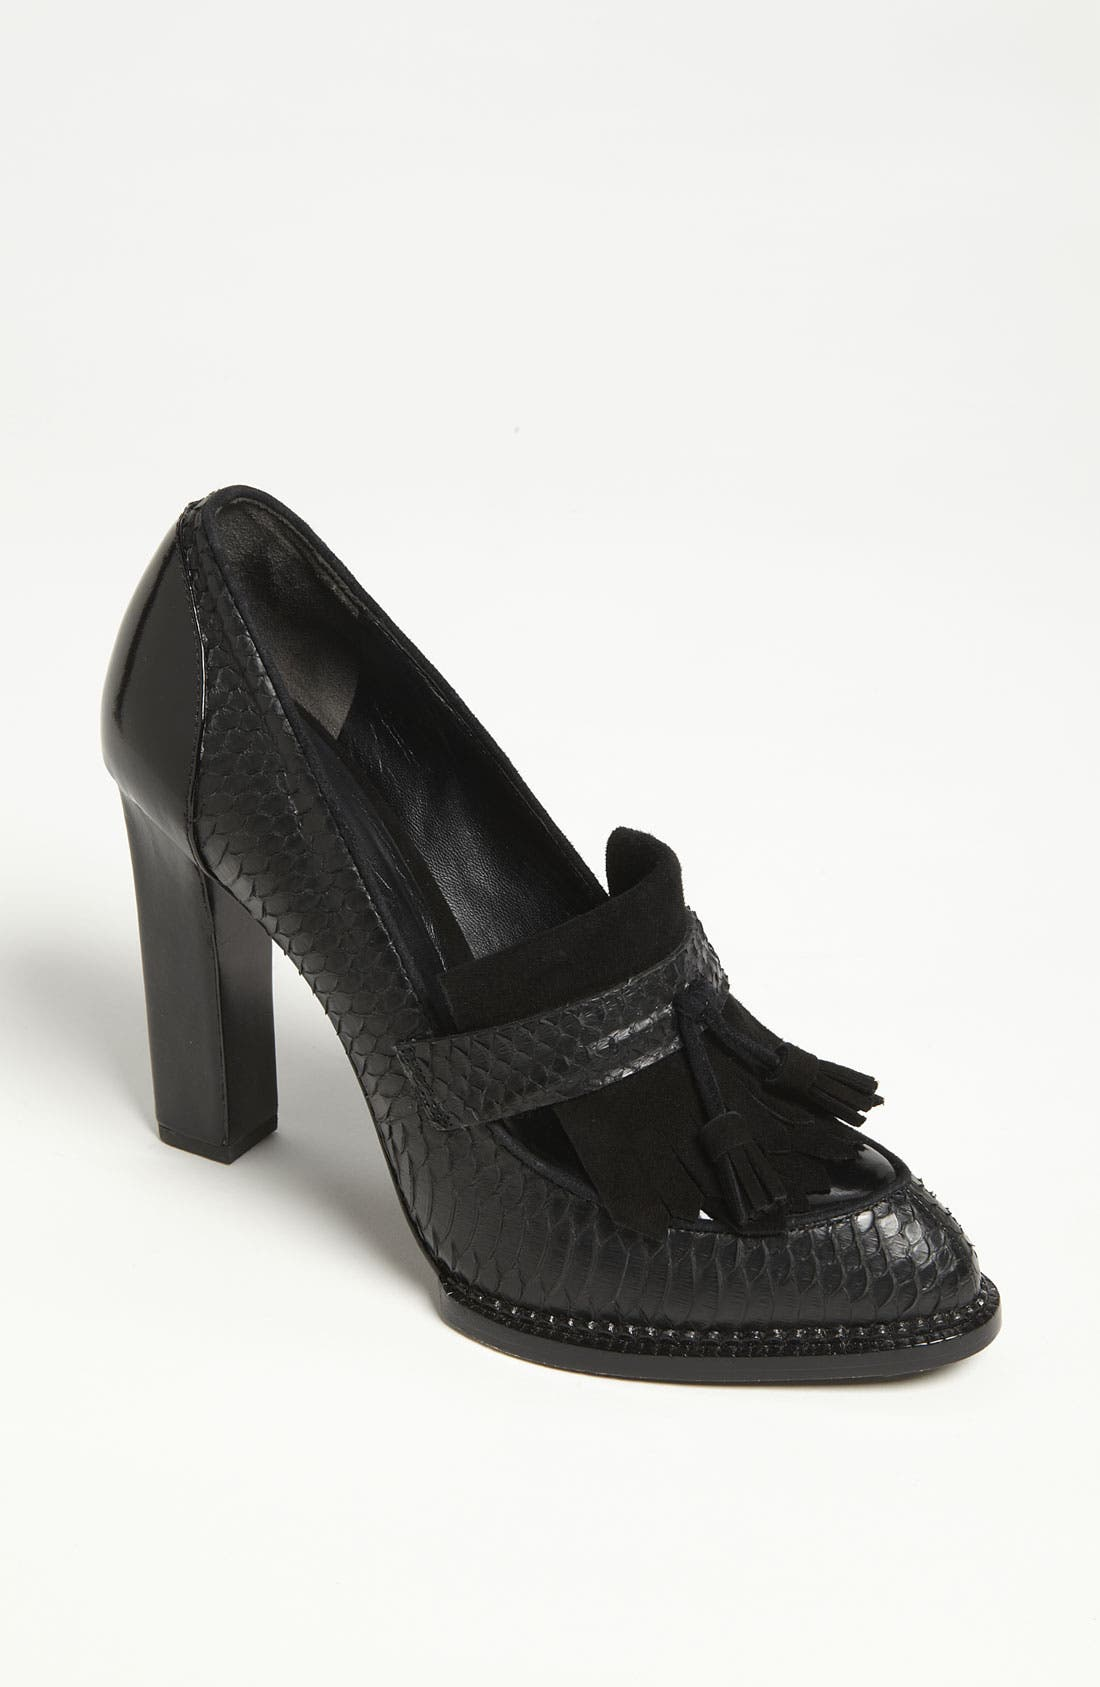 Alternate Image 1 Selected - Rachel Roy 'Jacqueline' Pump